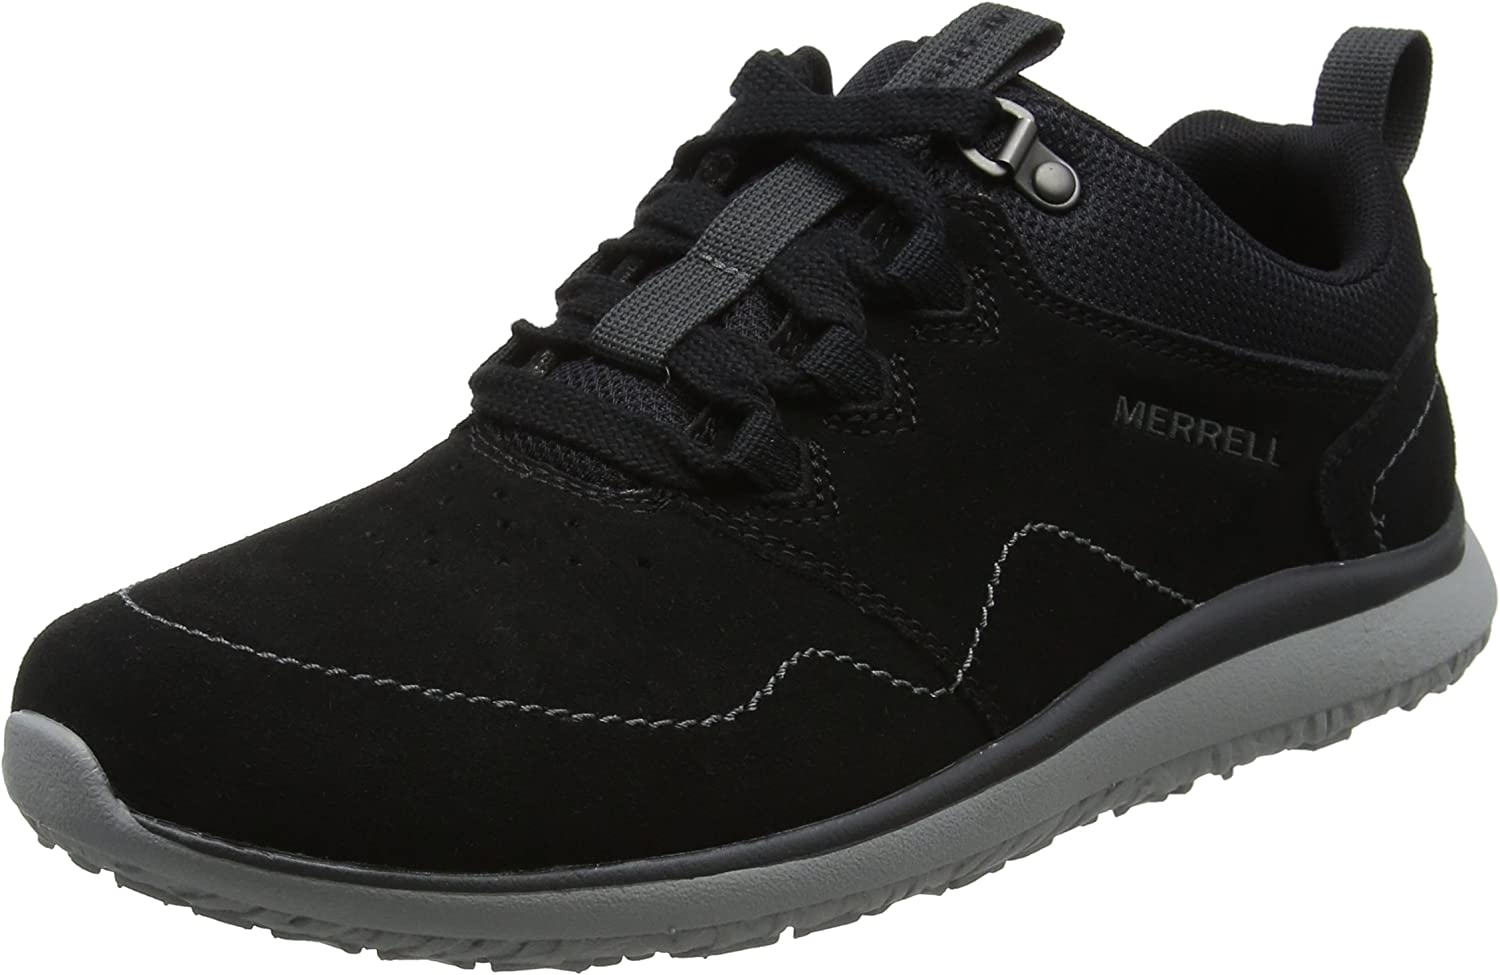 Merrell Men's Getaway Locksley Lace LTR shoes